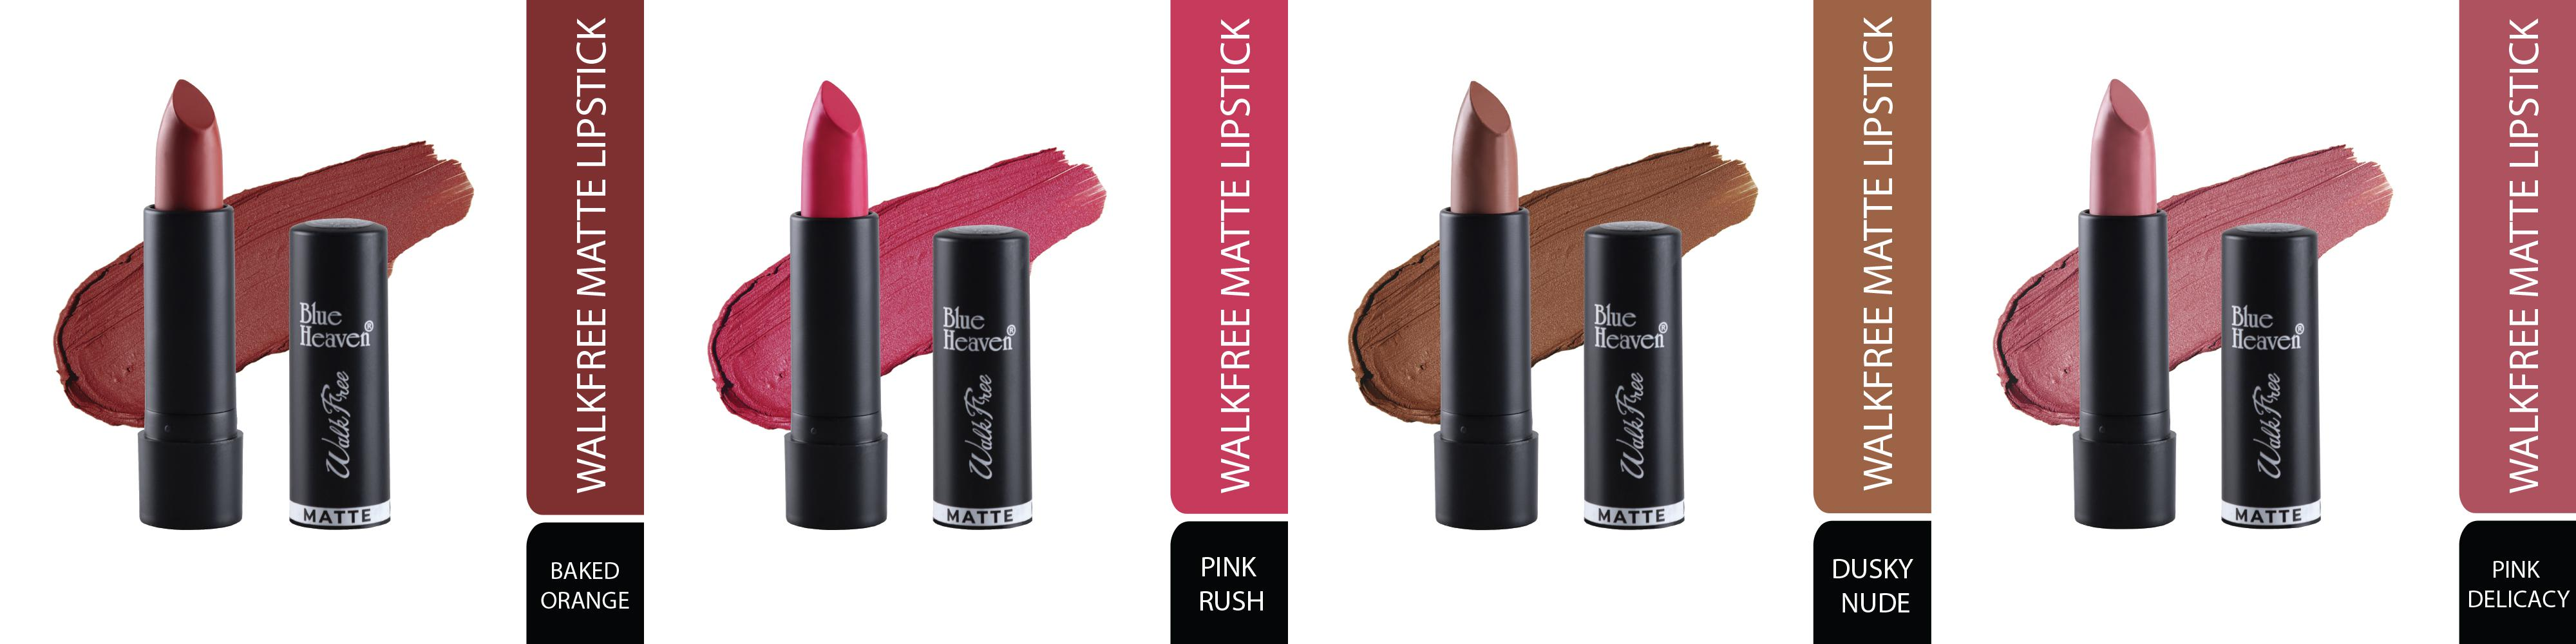 BH Walkfree Matte Lipstick Baked Orange, Pink Rush, Dusky Nude & Pink Delicacy pack of 4